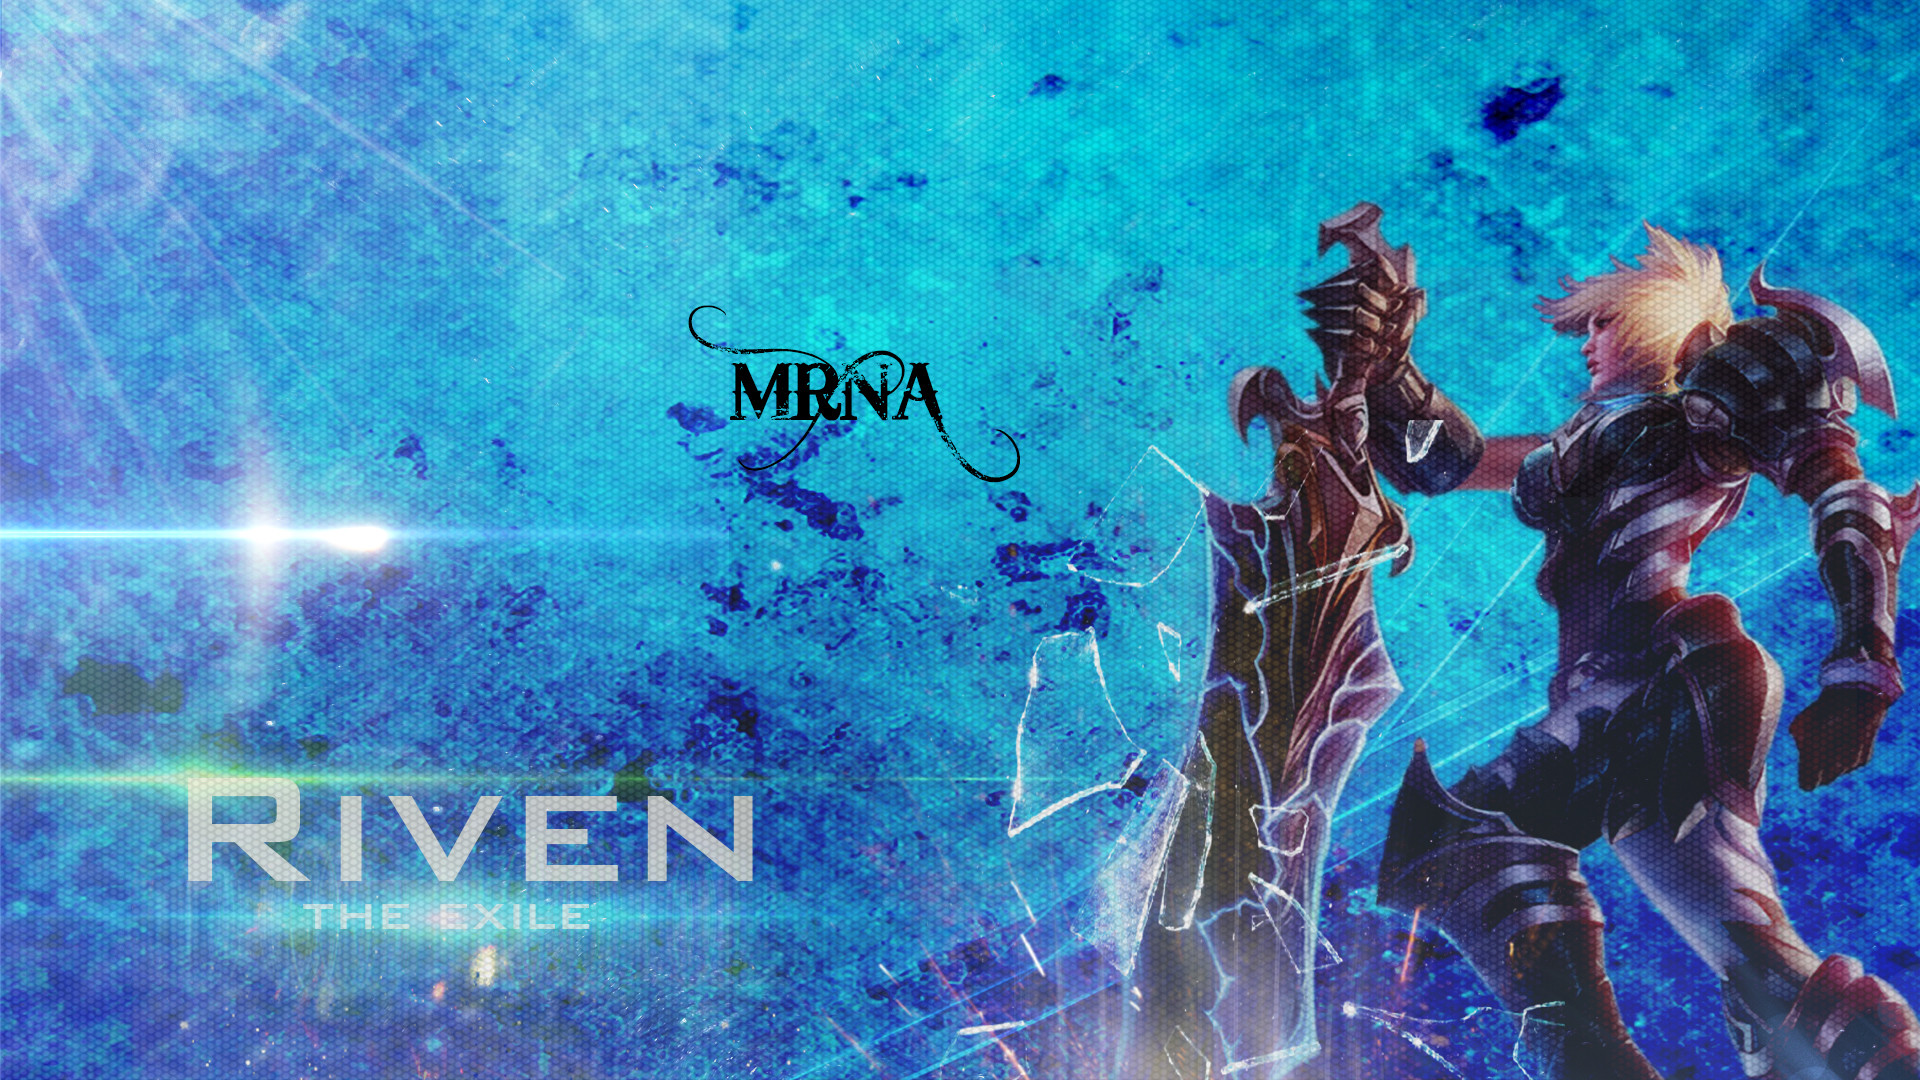 1920x1080 ... Riven WallPaper [] by MRNAlol